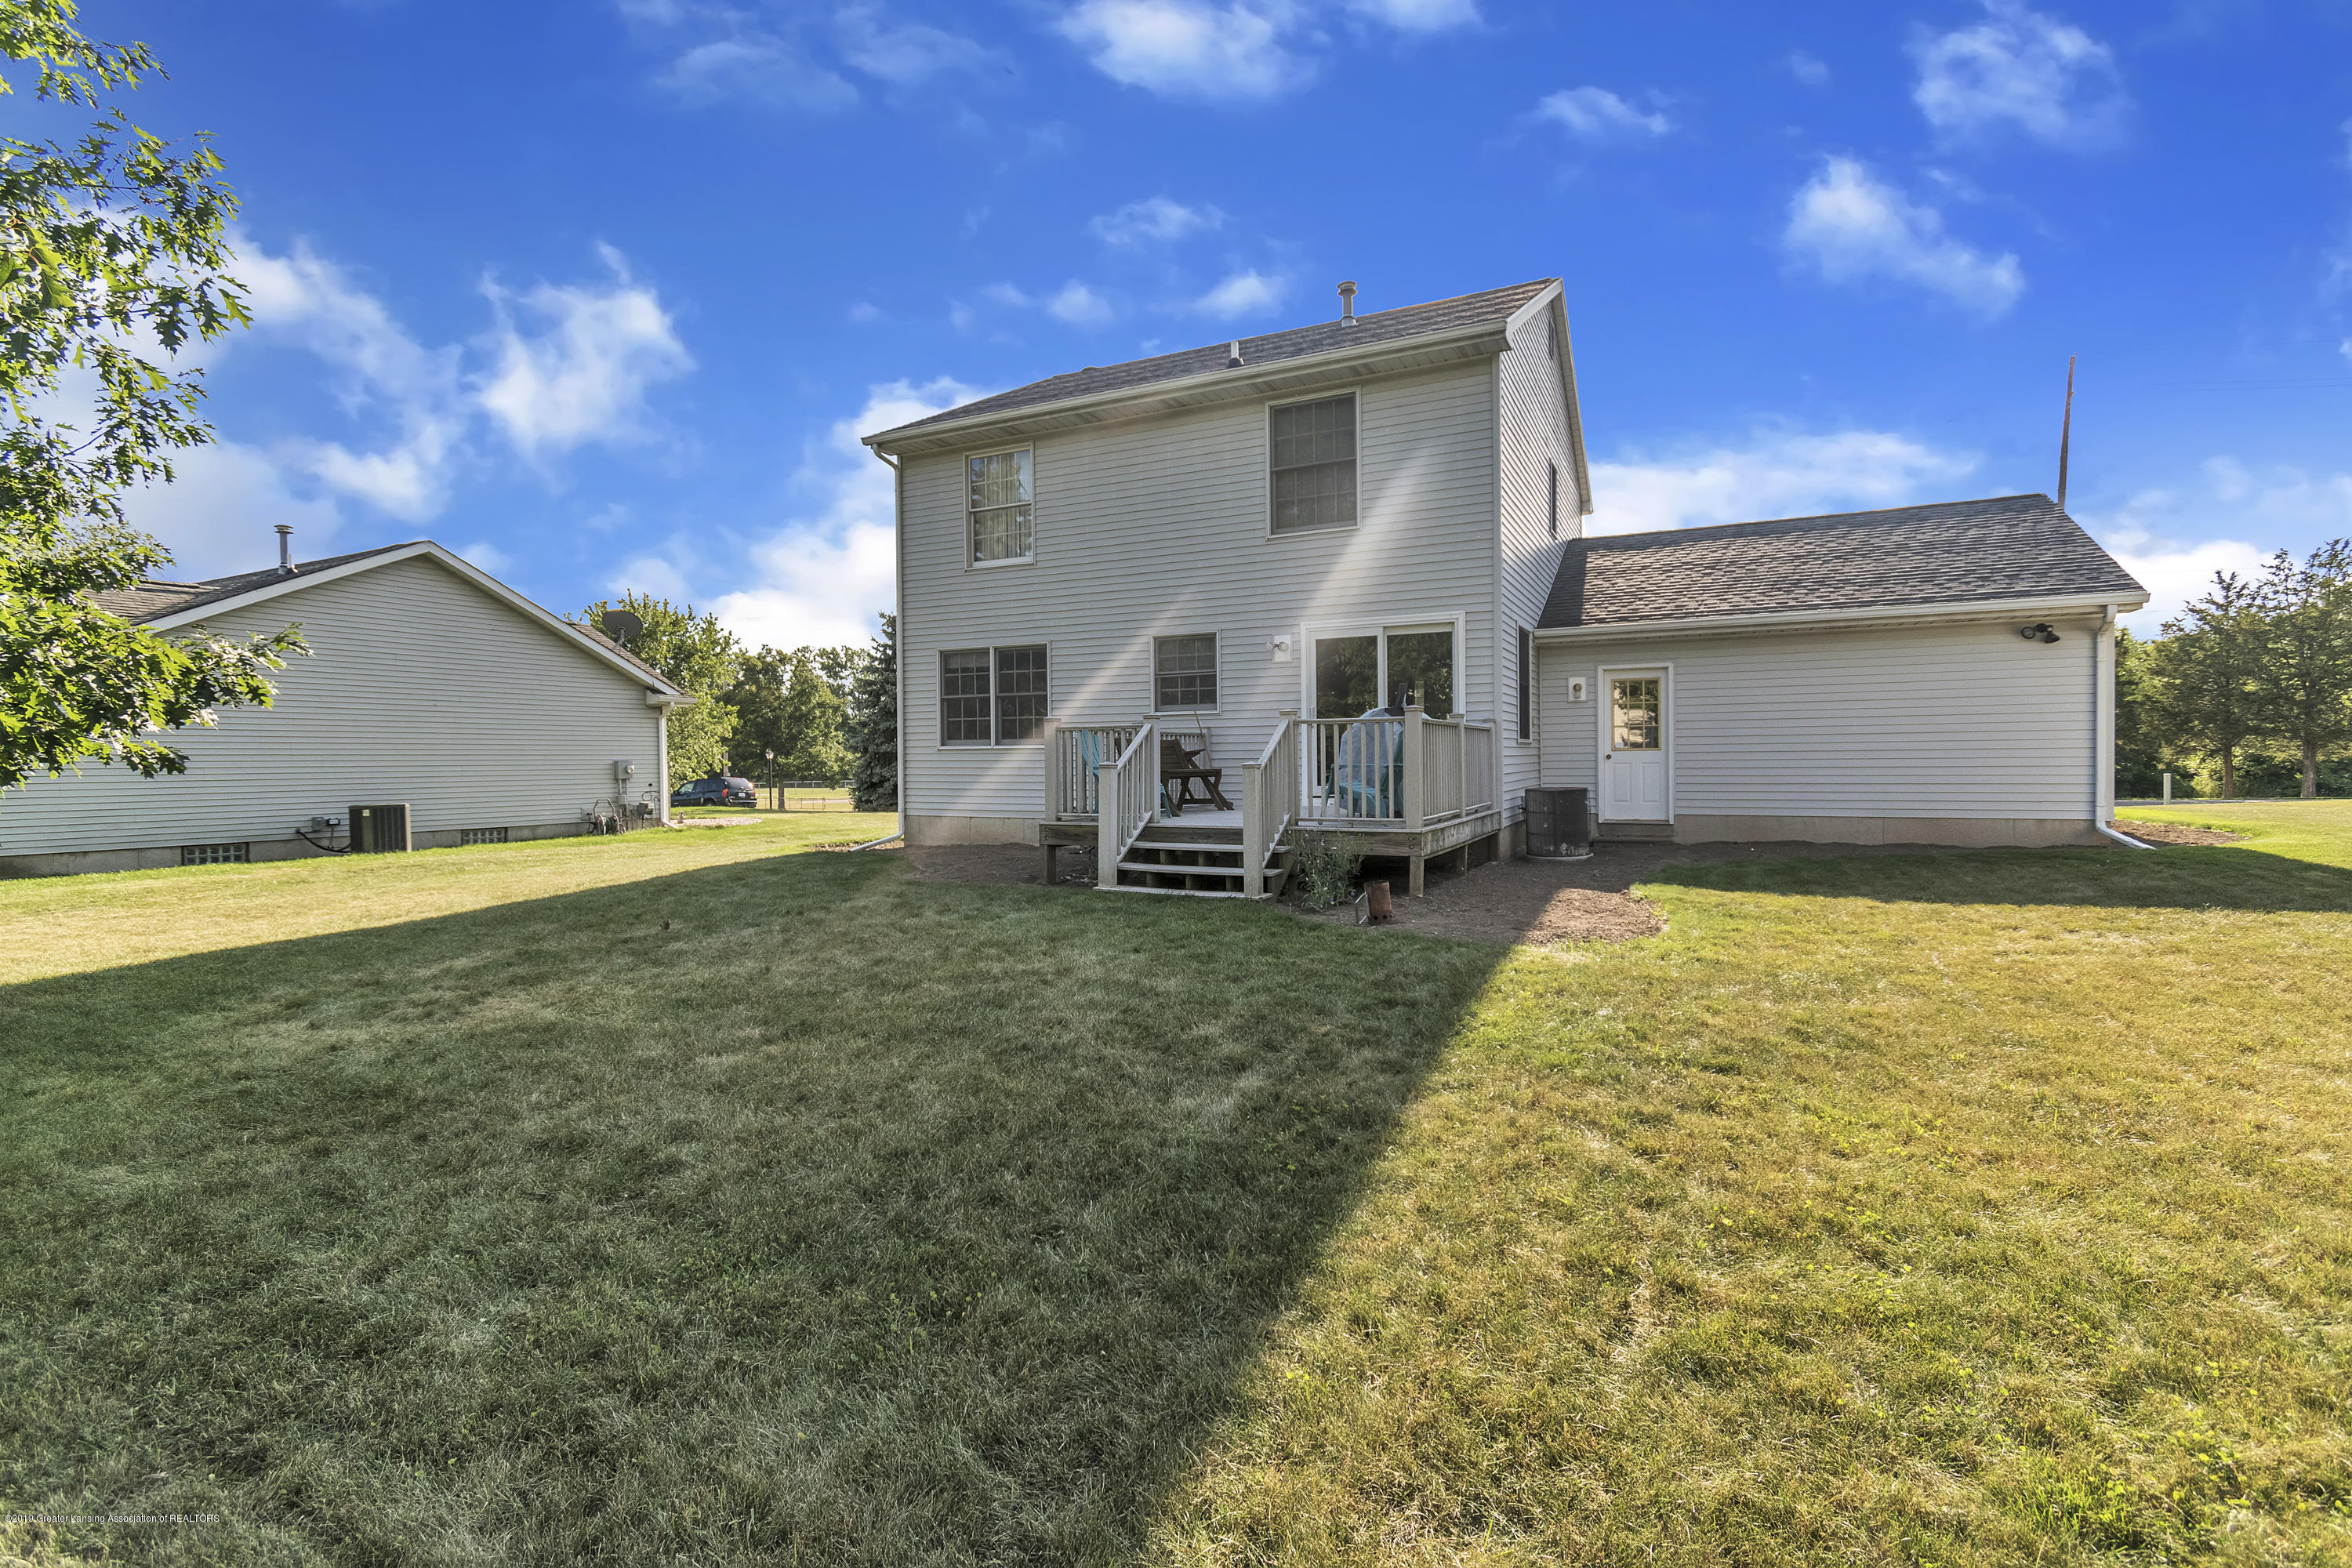 2350 Pine Tree Rd - 2350-Pine-Tree-Rd-Holt-MI-windowstill-39 - 41